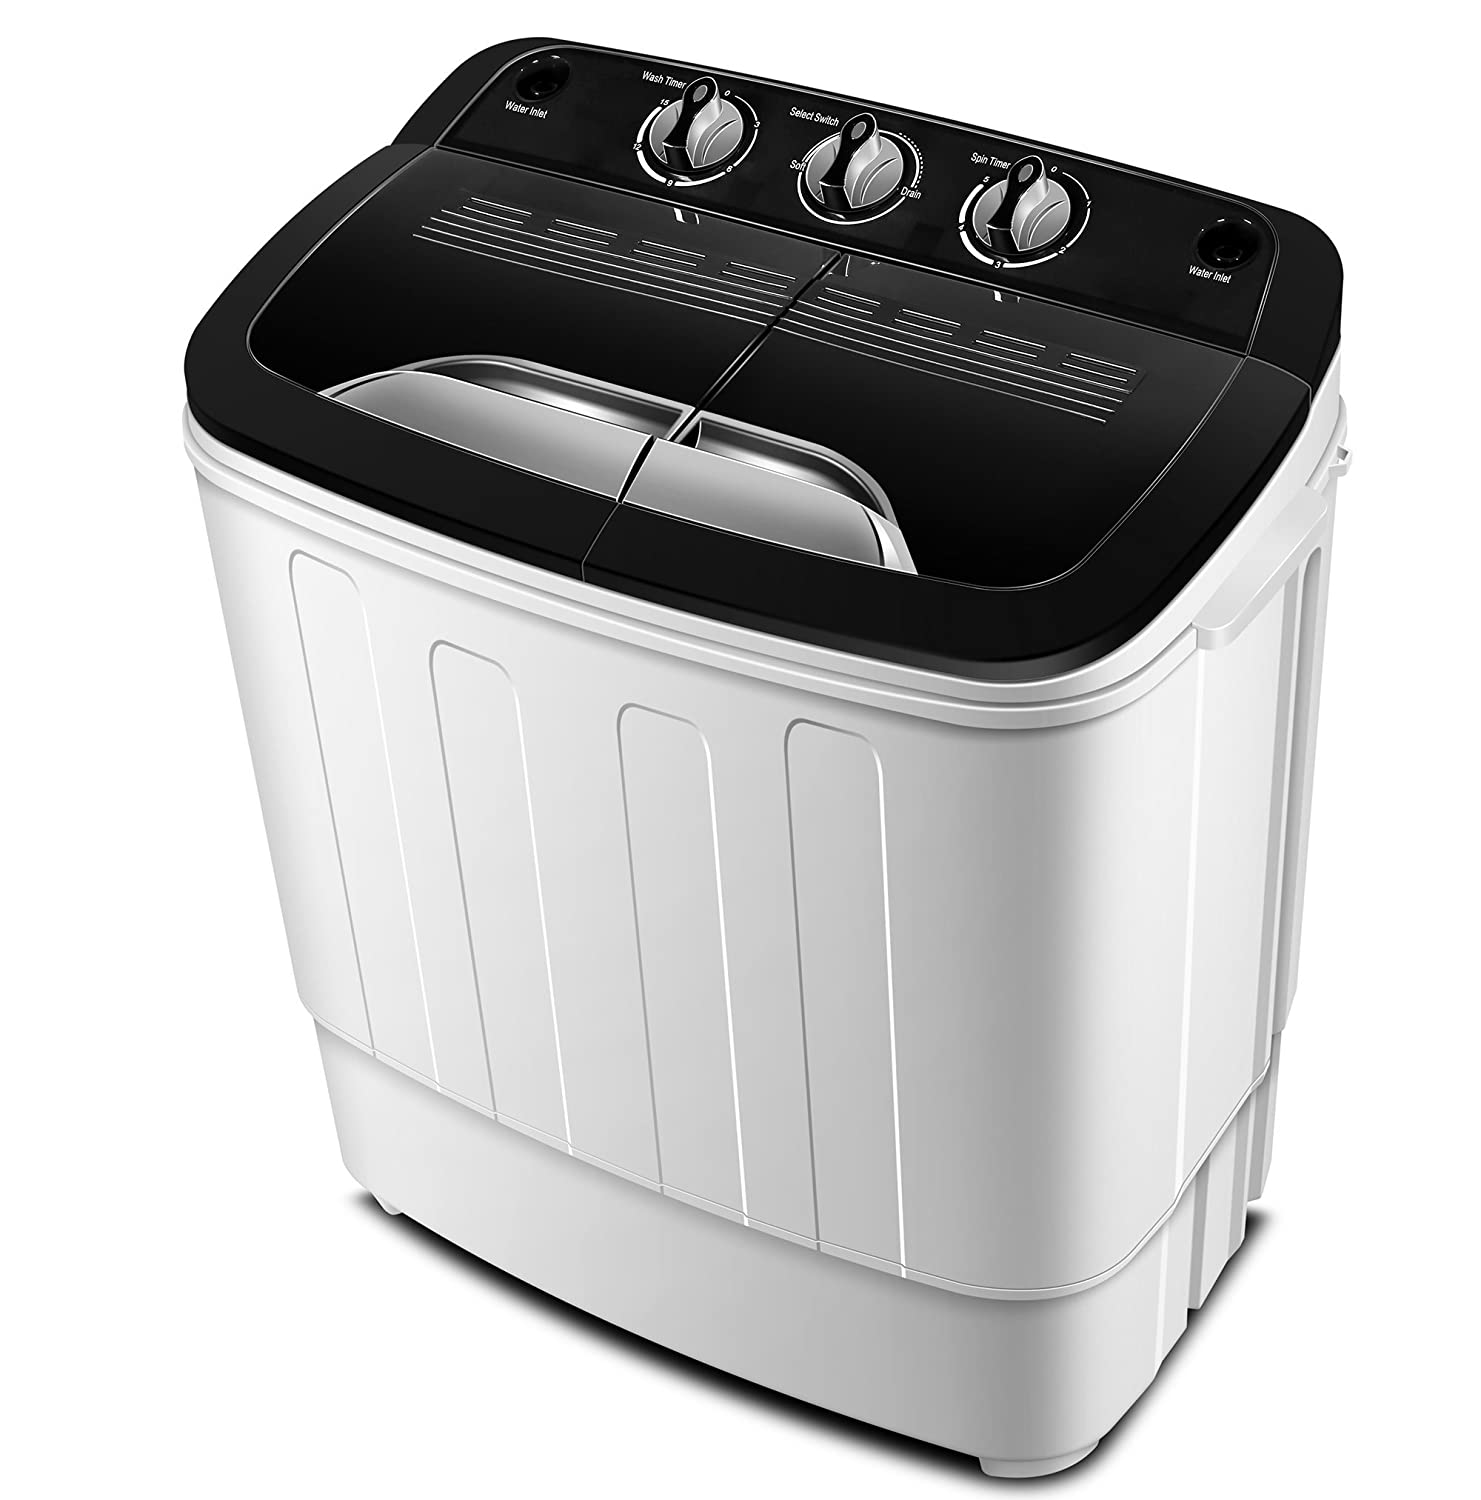 portable-washing-machine-tg23---twin-tub-washer-machine-with-wash-and-spin-cycle-compartments-by-thinkgizmos-(trademark-protected) by think-gizmos